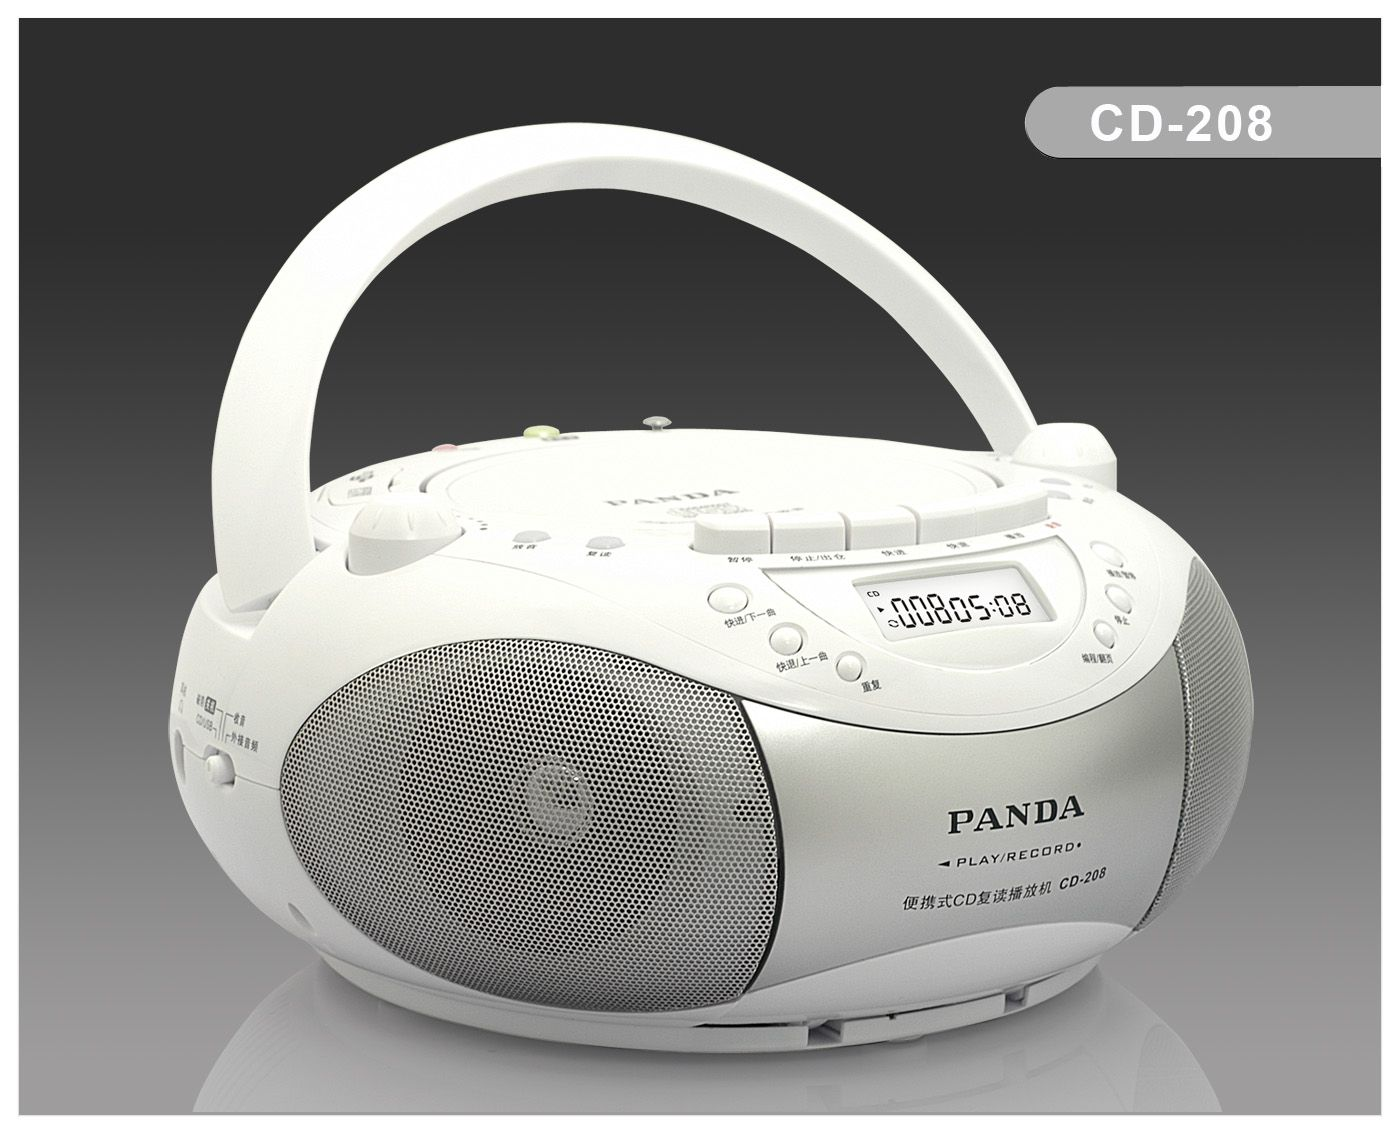 CD-208 CD BOOMBOX WITH LANGUAGE REPEATER